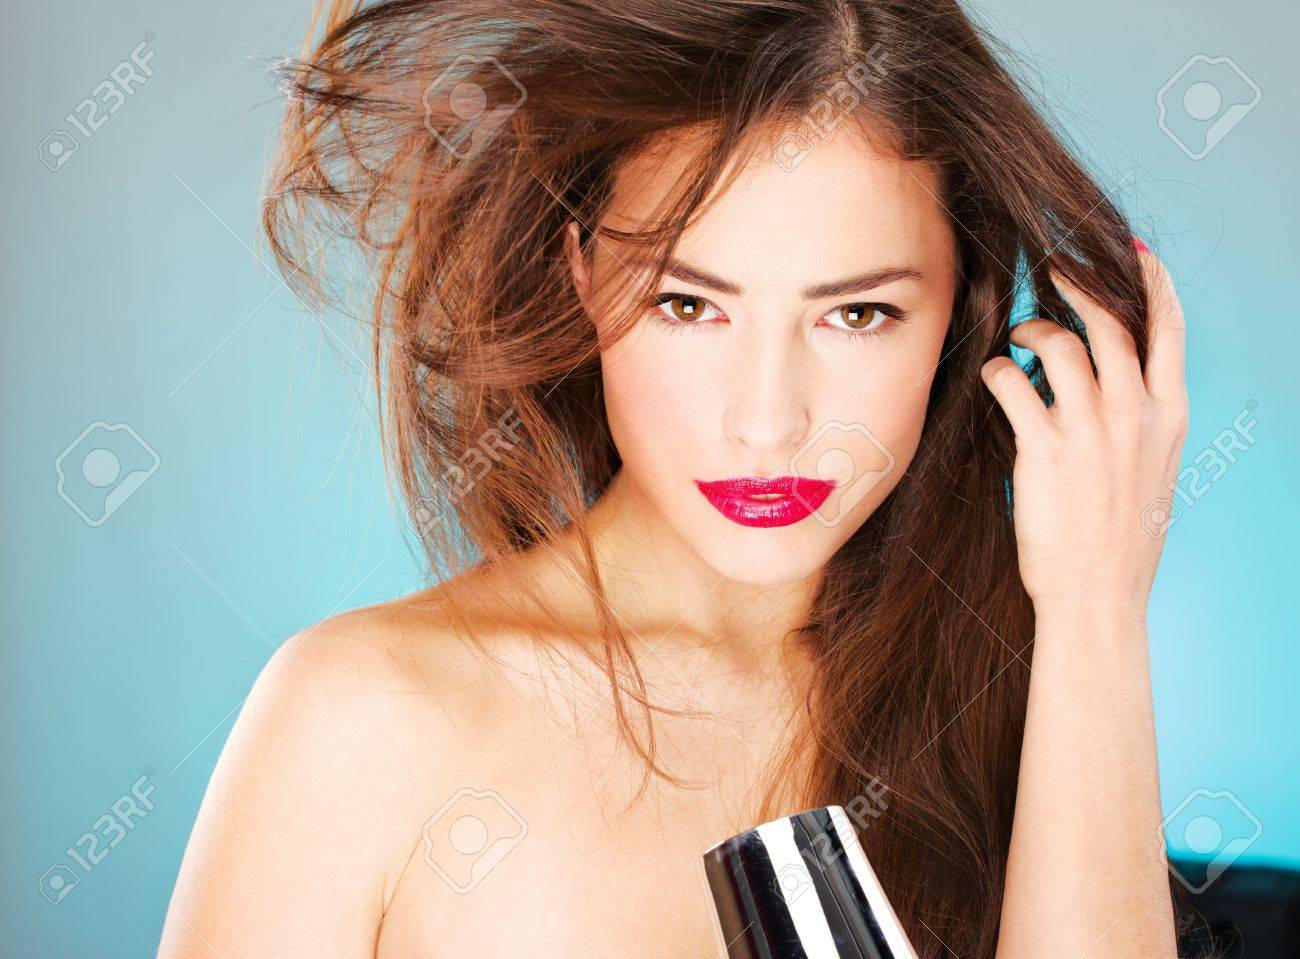 pretty woman with long hair holding blow dryer Stock Photo - 12789345